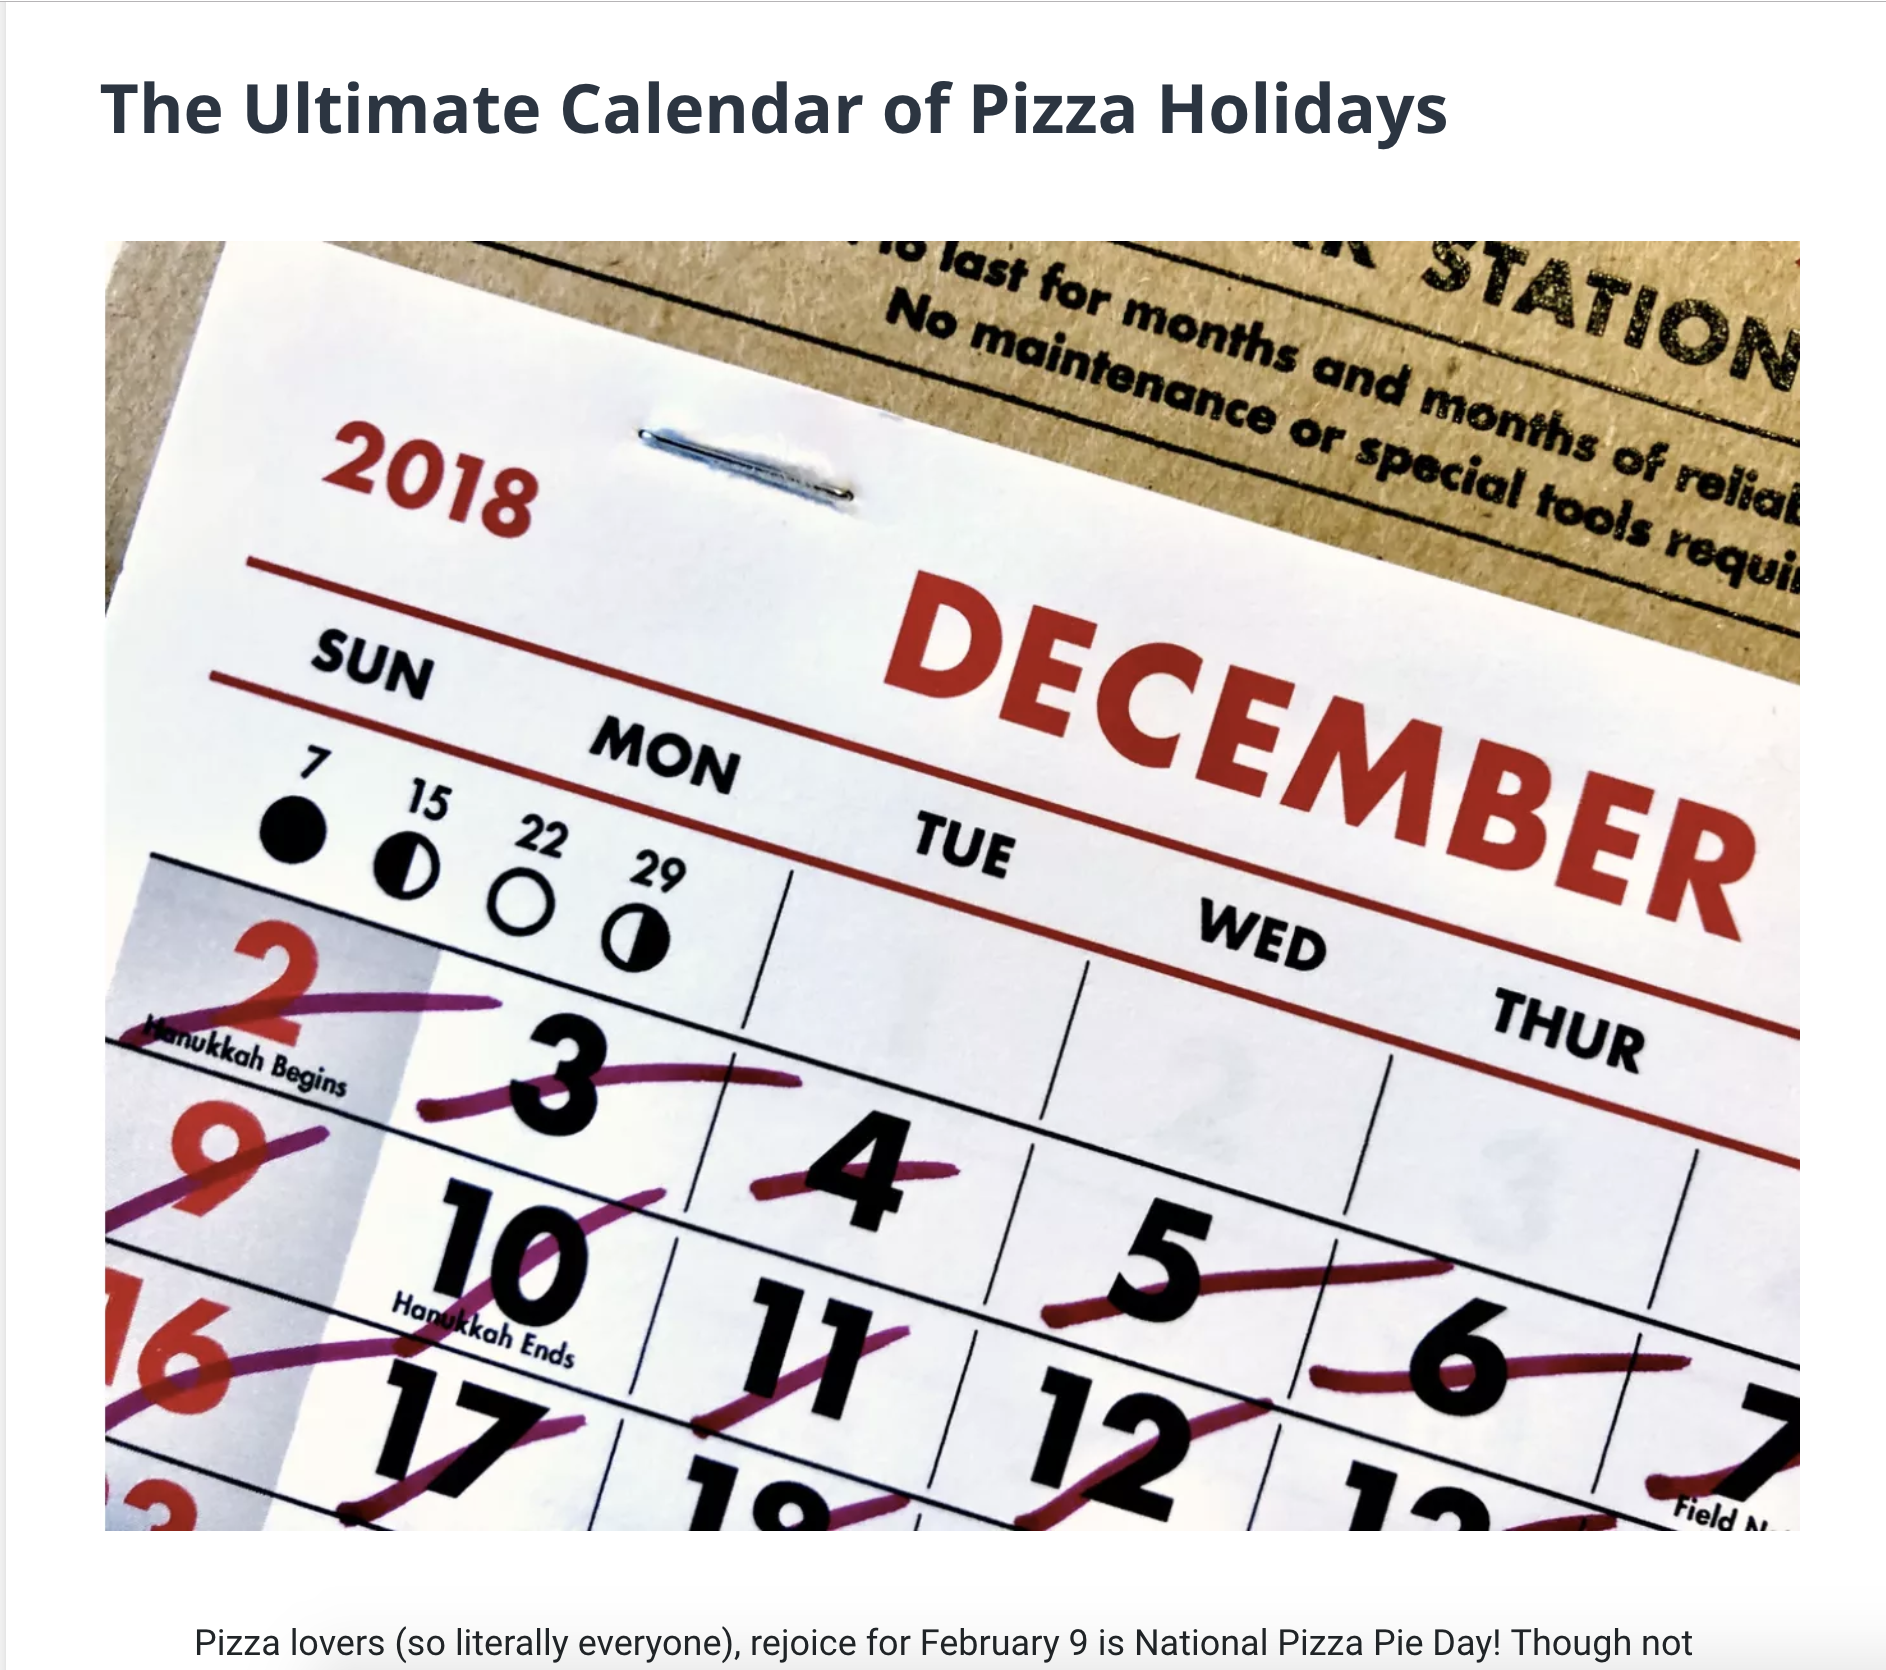 The Ultimate Calendar of Pizza Holidays